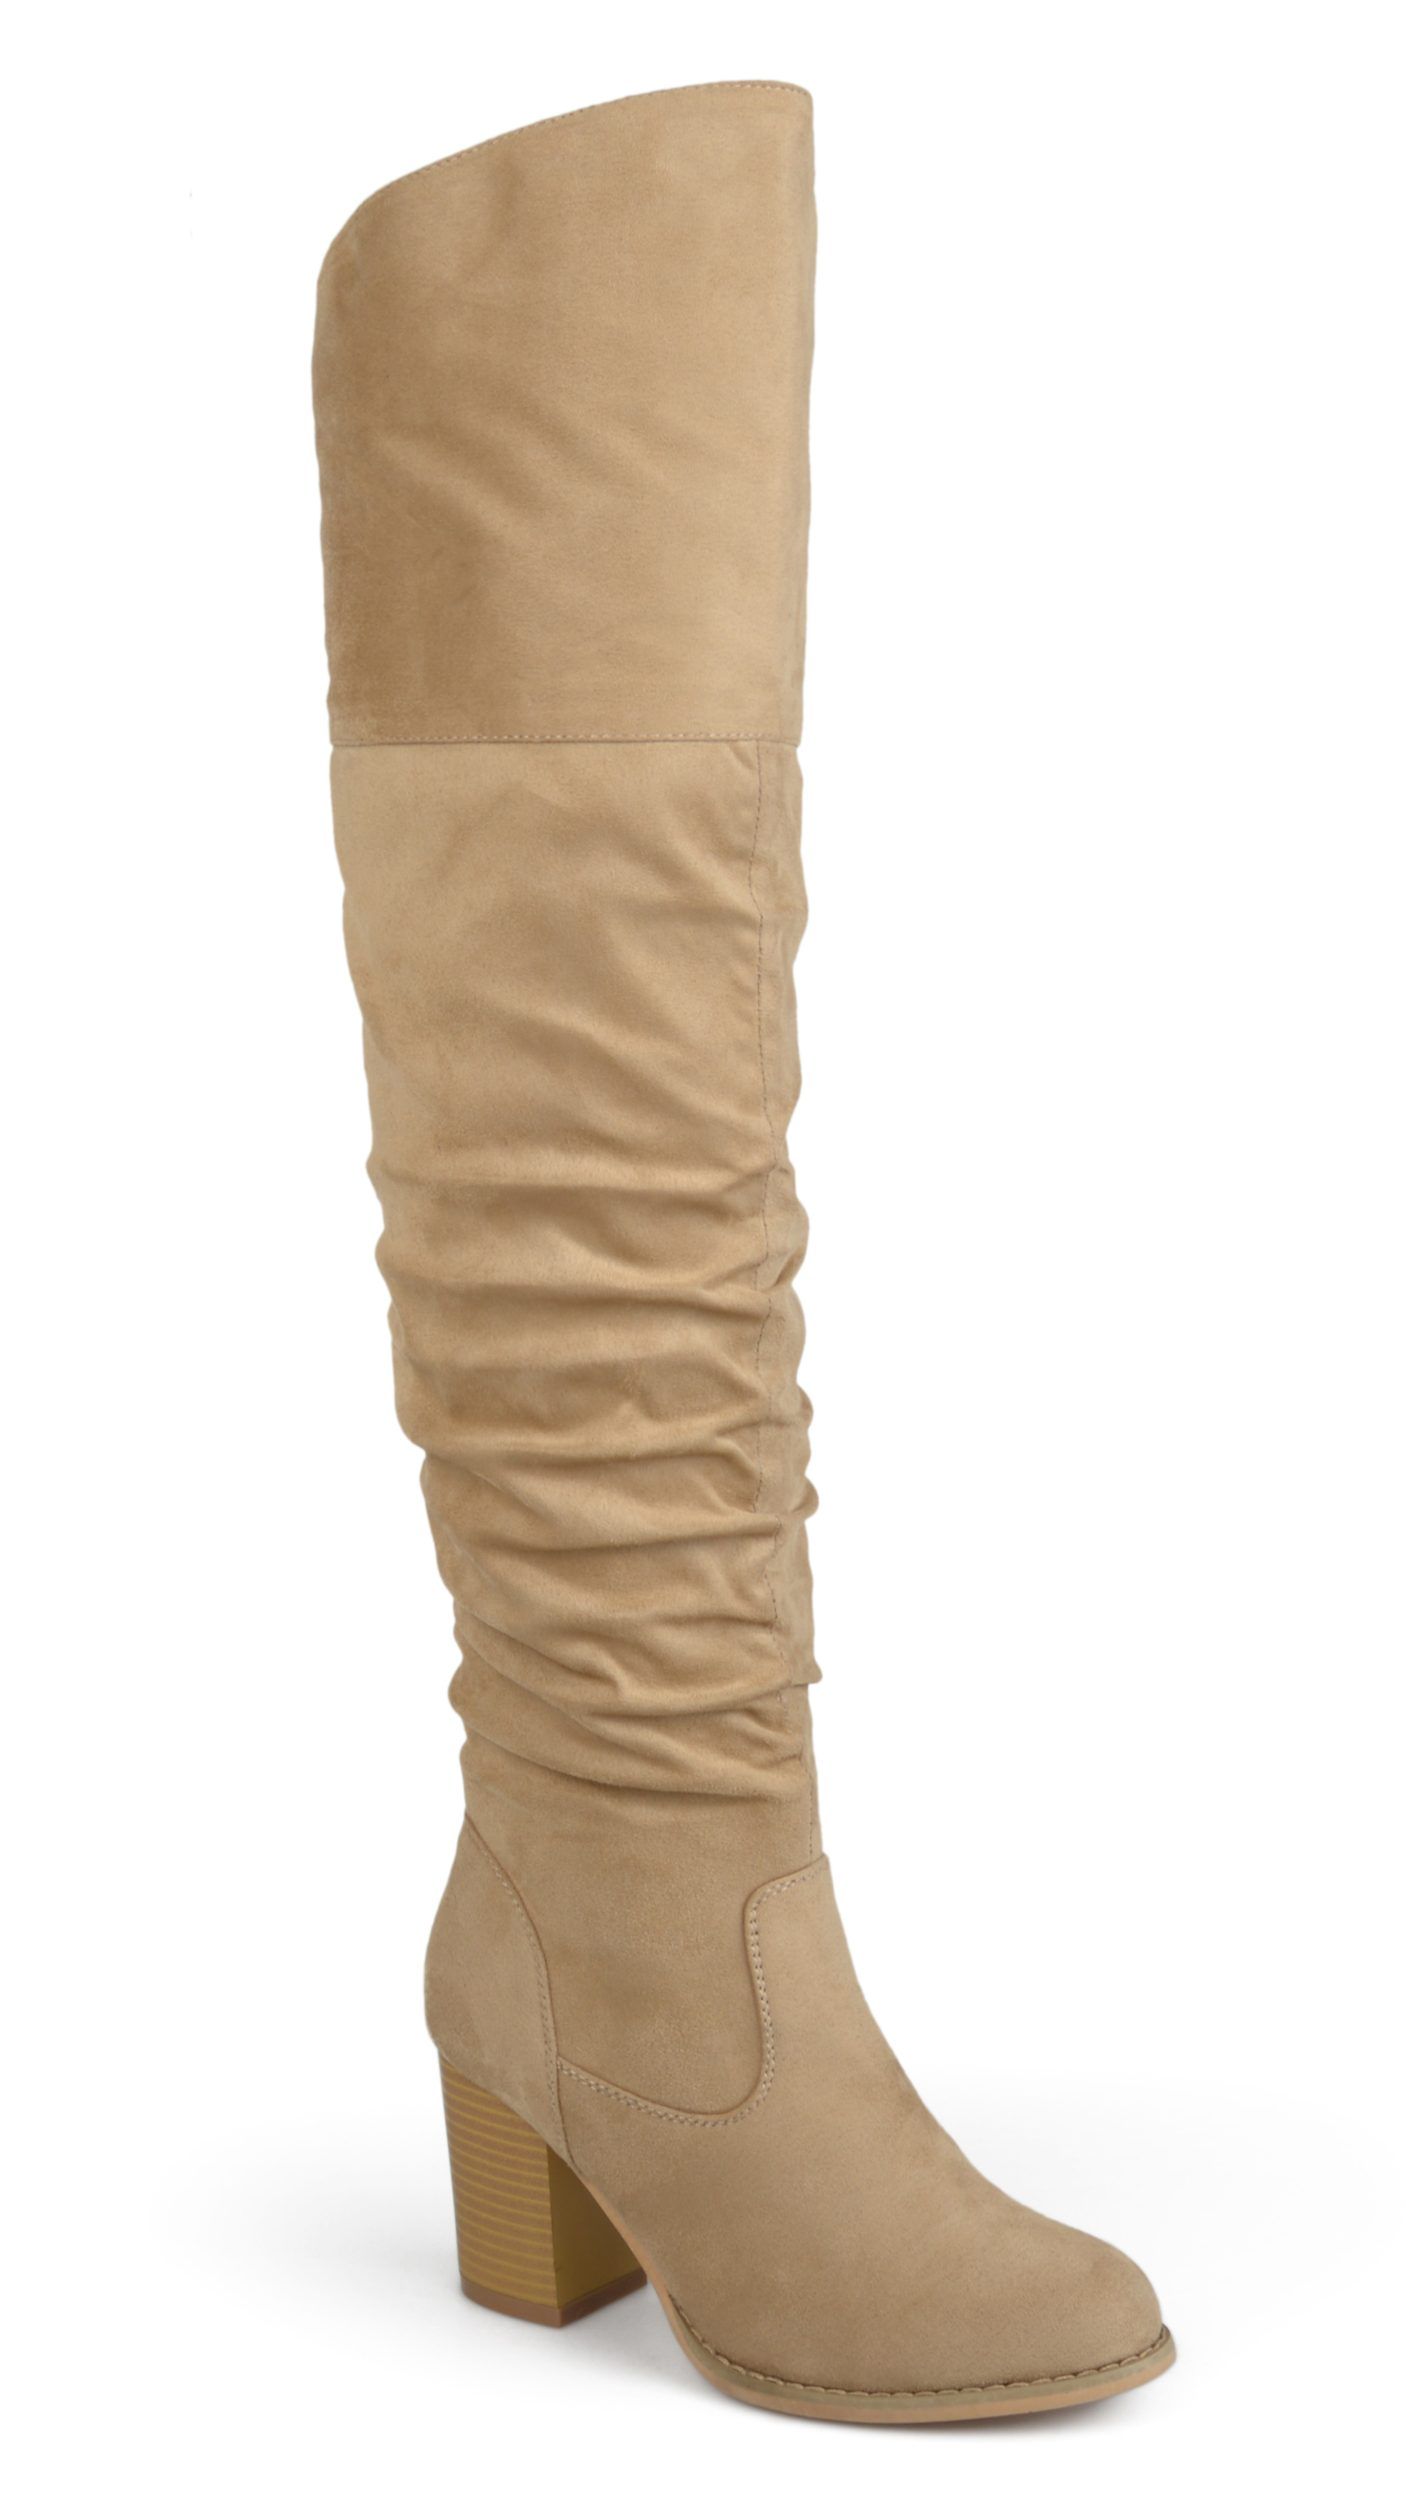 Brinley Co. Wide Calf Ruched Stacked Heel Faux Suede Over-the-knee Boots